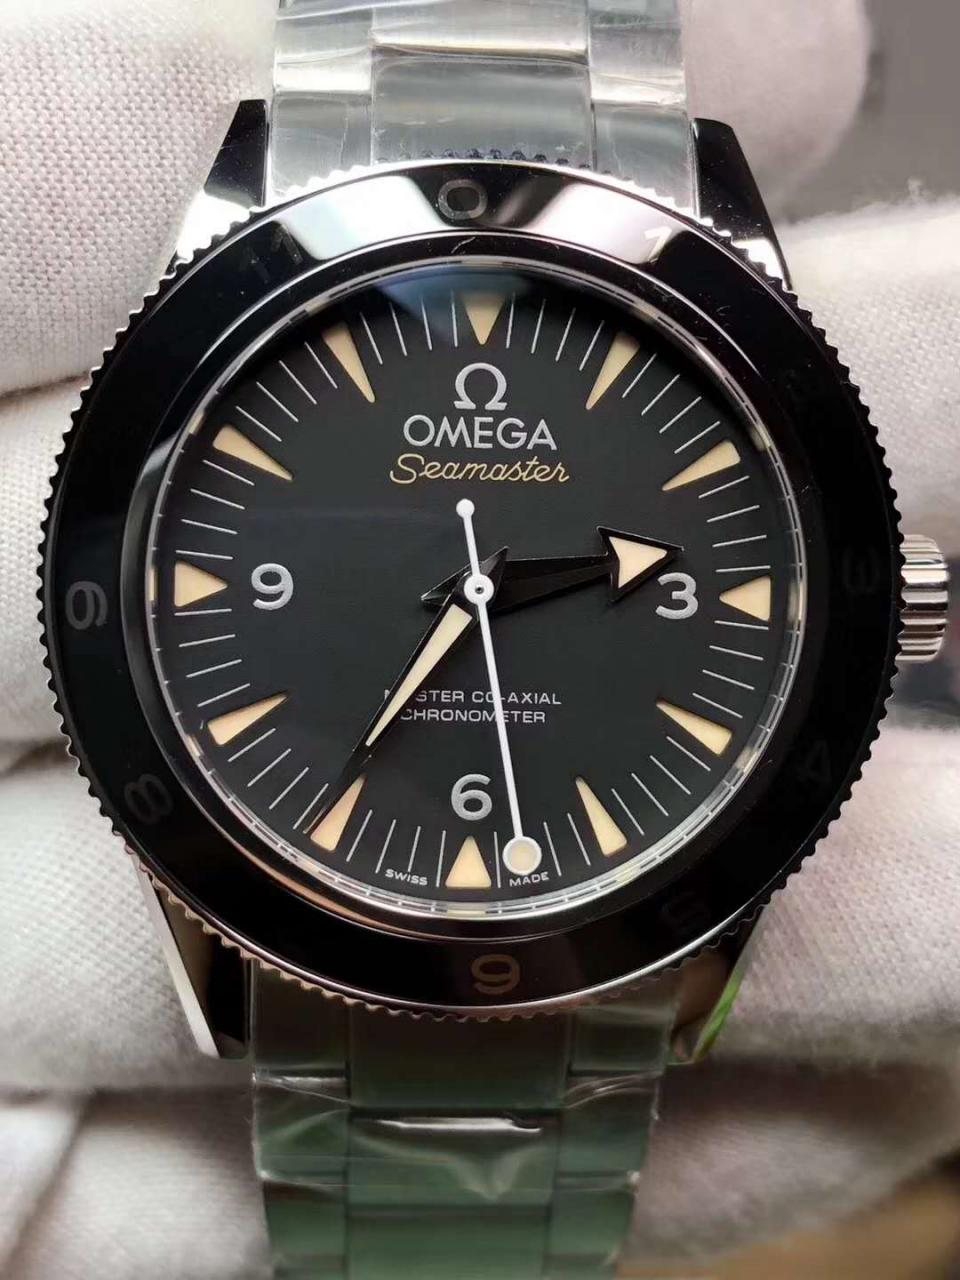 Omega Seamaster Spectre 007 Dial